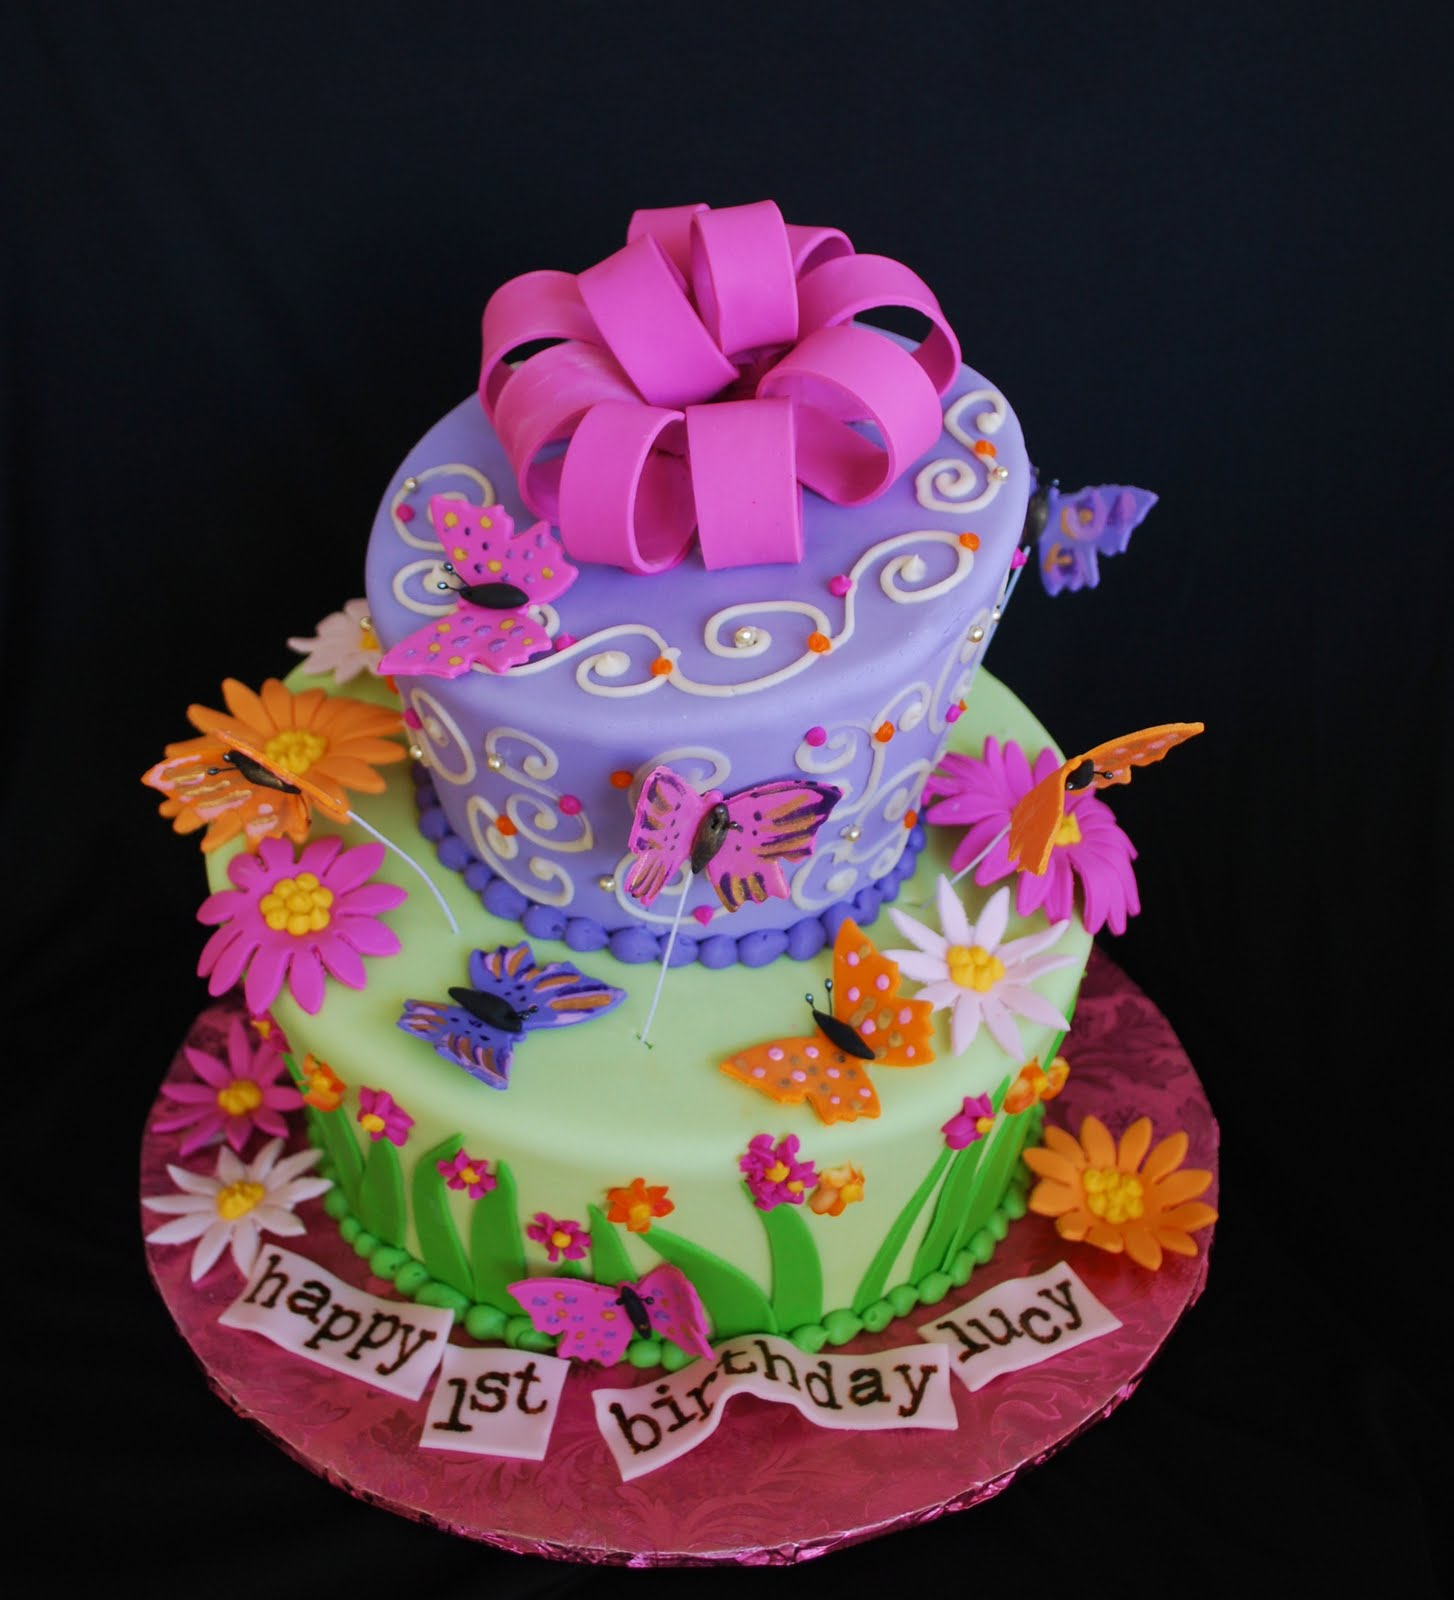 Butterfly Cake Pan Decorating Ideas : Butterfly Cake Recipe   Dishmaps